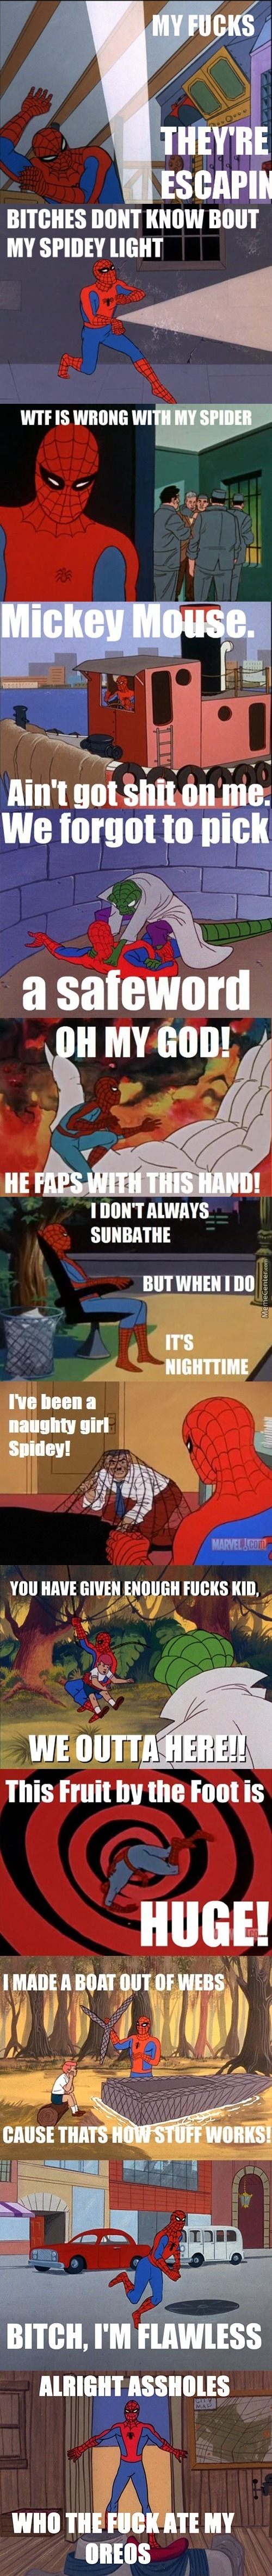 60's Spiderman Strikes Again!